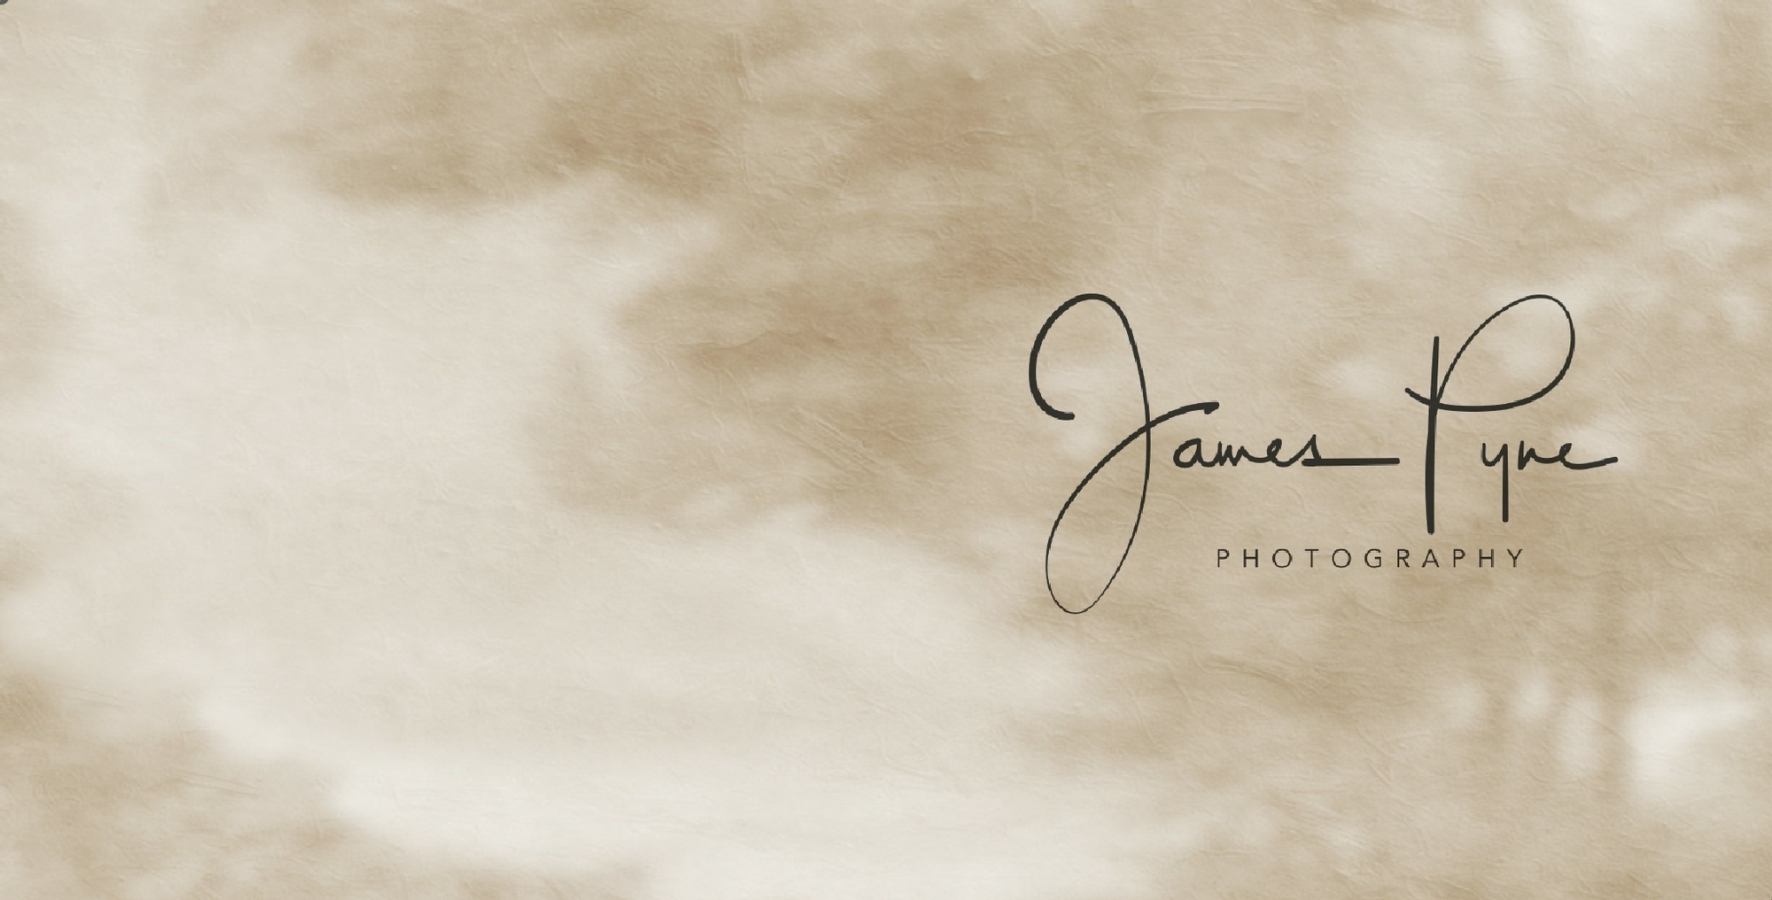 James Pyne Photography Melbourne, Frankston, Somerville & Mornington Peninsula Wedding Photographer